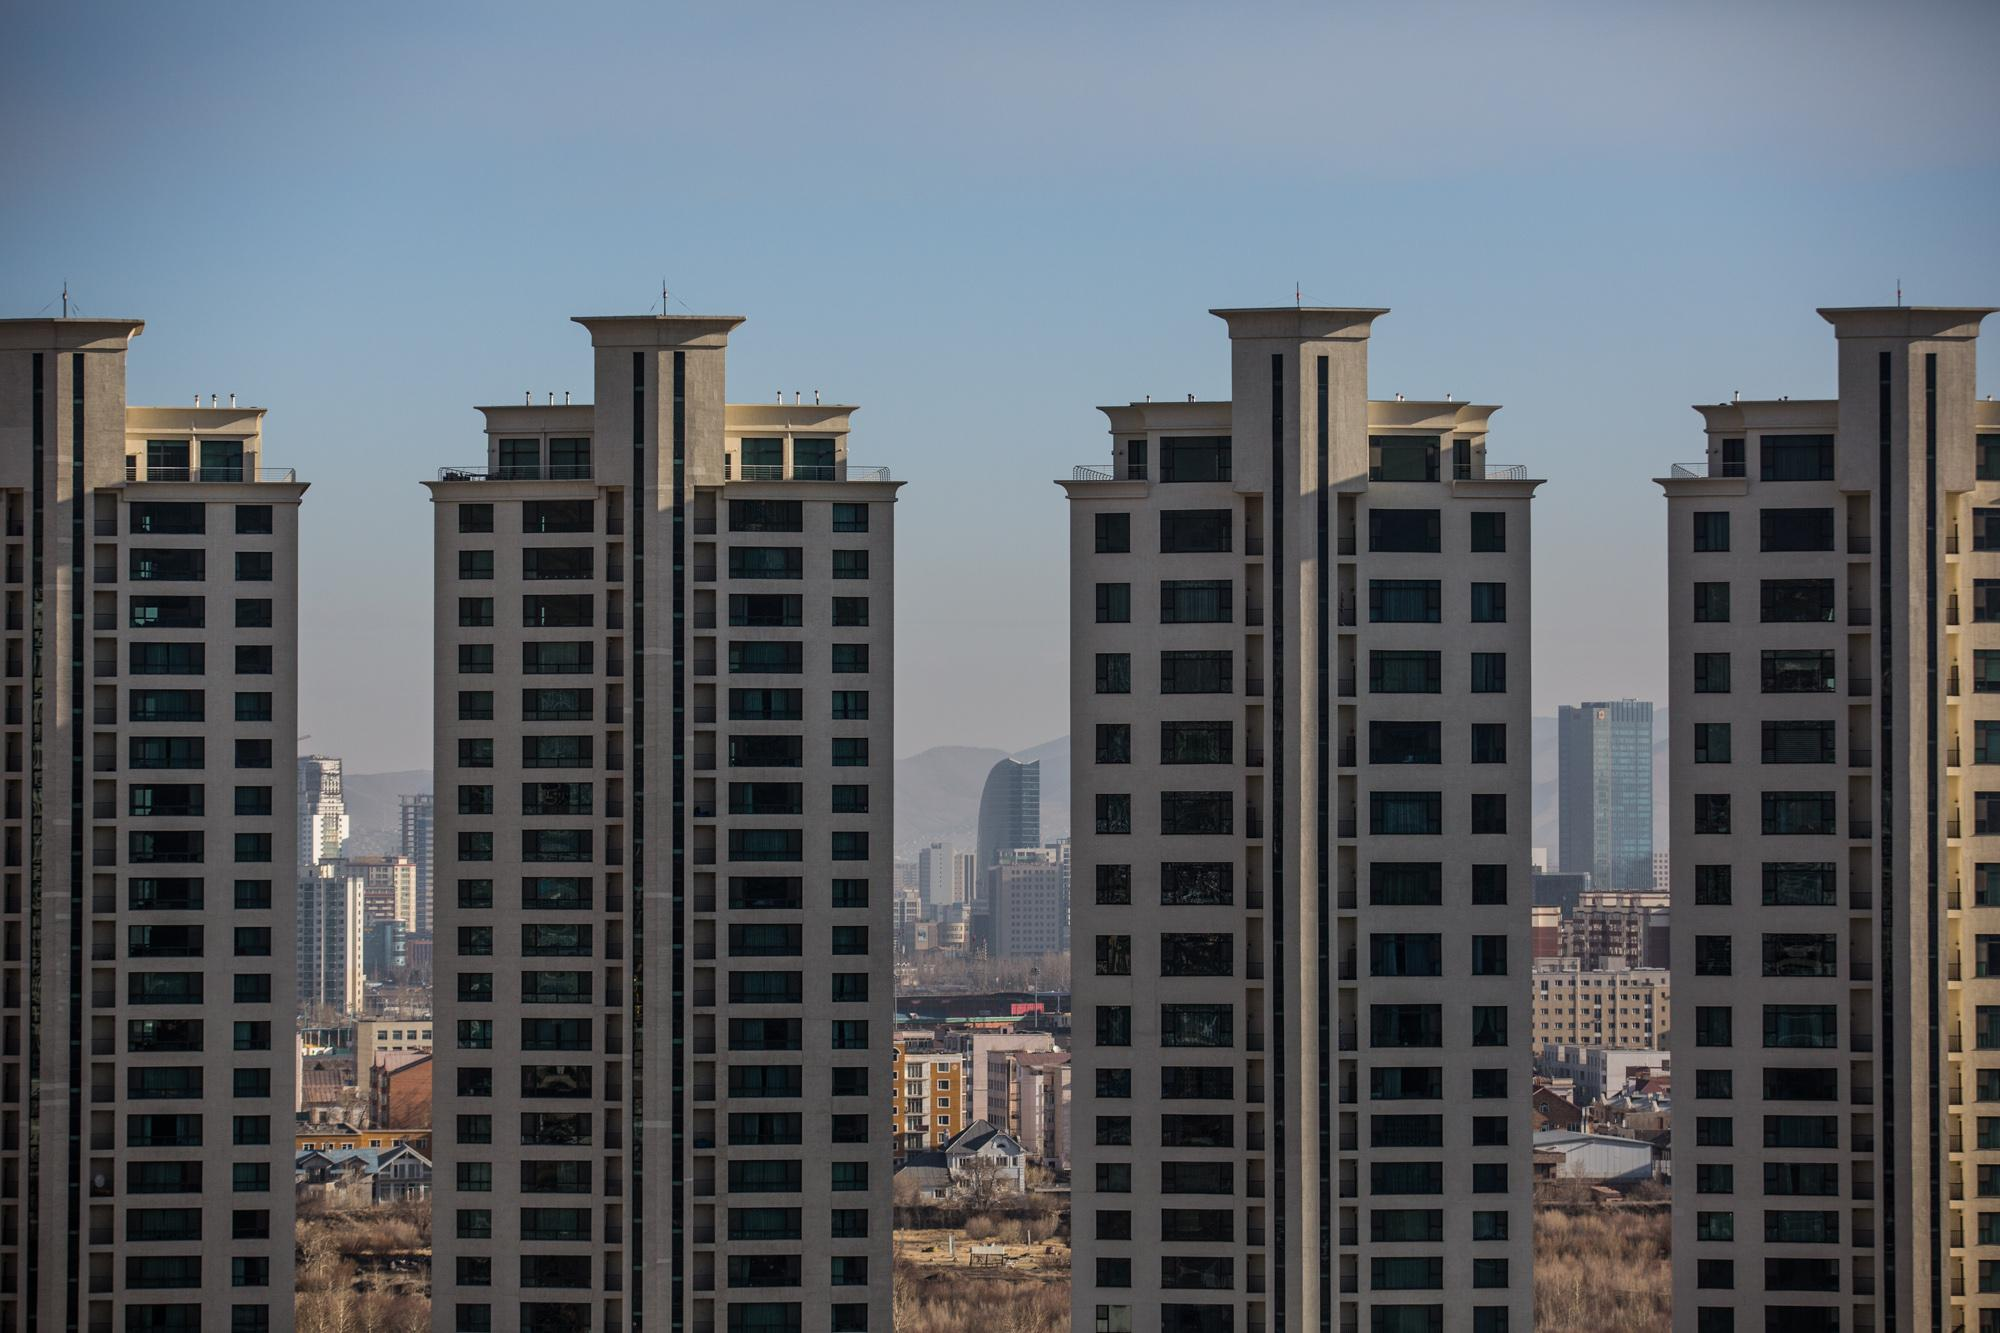 New high-rise buildings are seen in Ulaanbataar, Mongolia. Rapid, urban development mixed with a traditional diet of meat and fried bread is a leading cause of hypertension and high blood pressure in Mongolians.